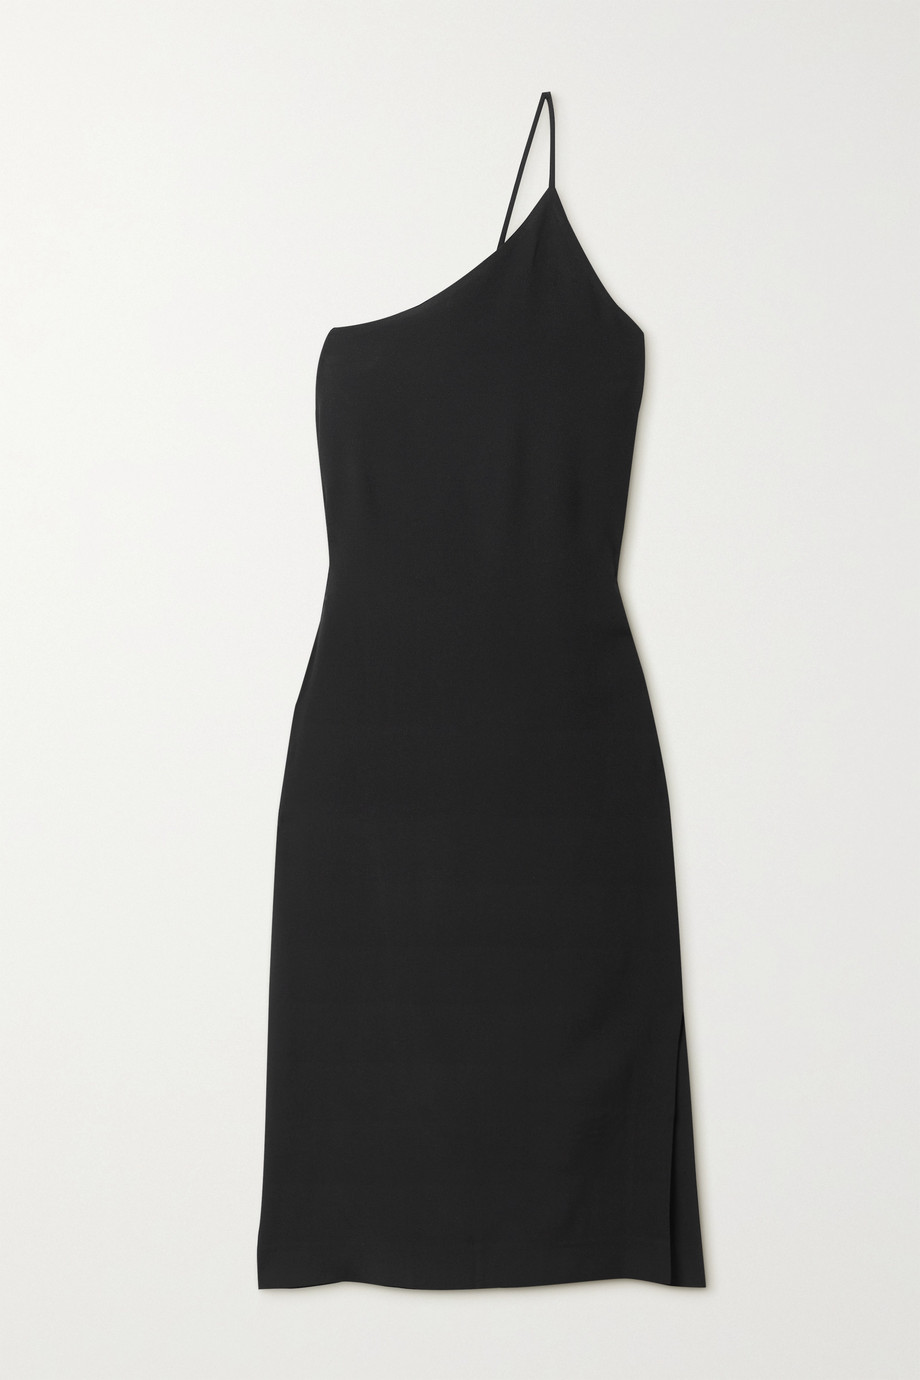 Acne Studios One-shoulder crepe dress